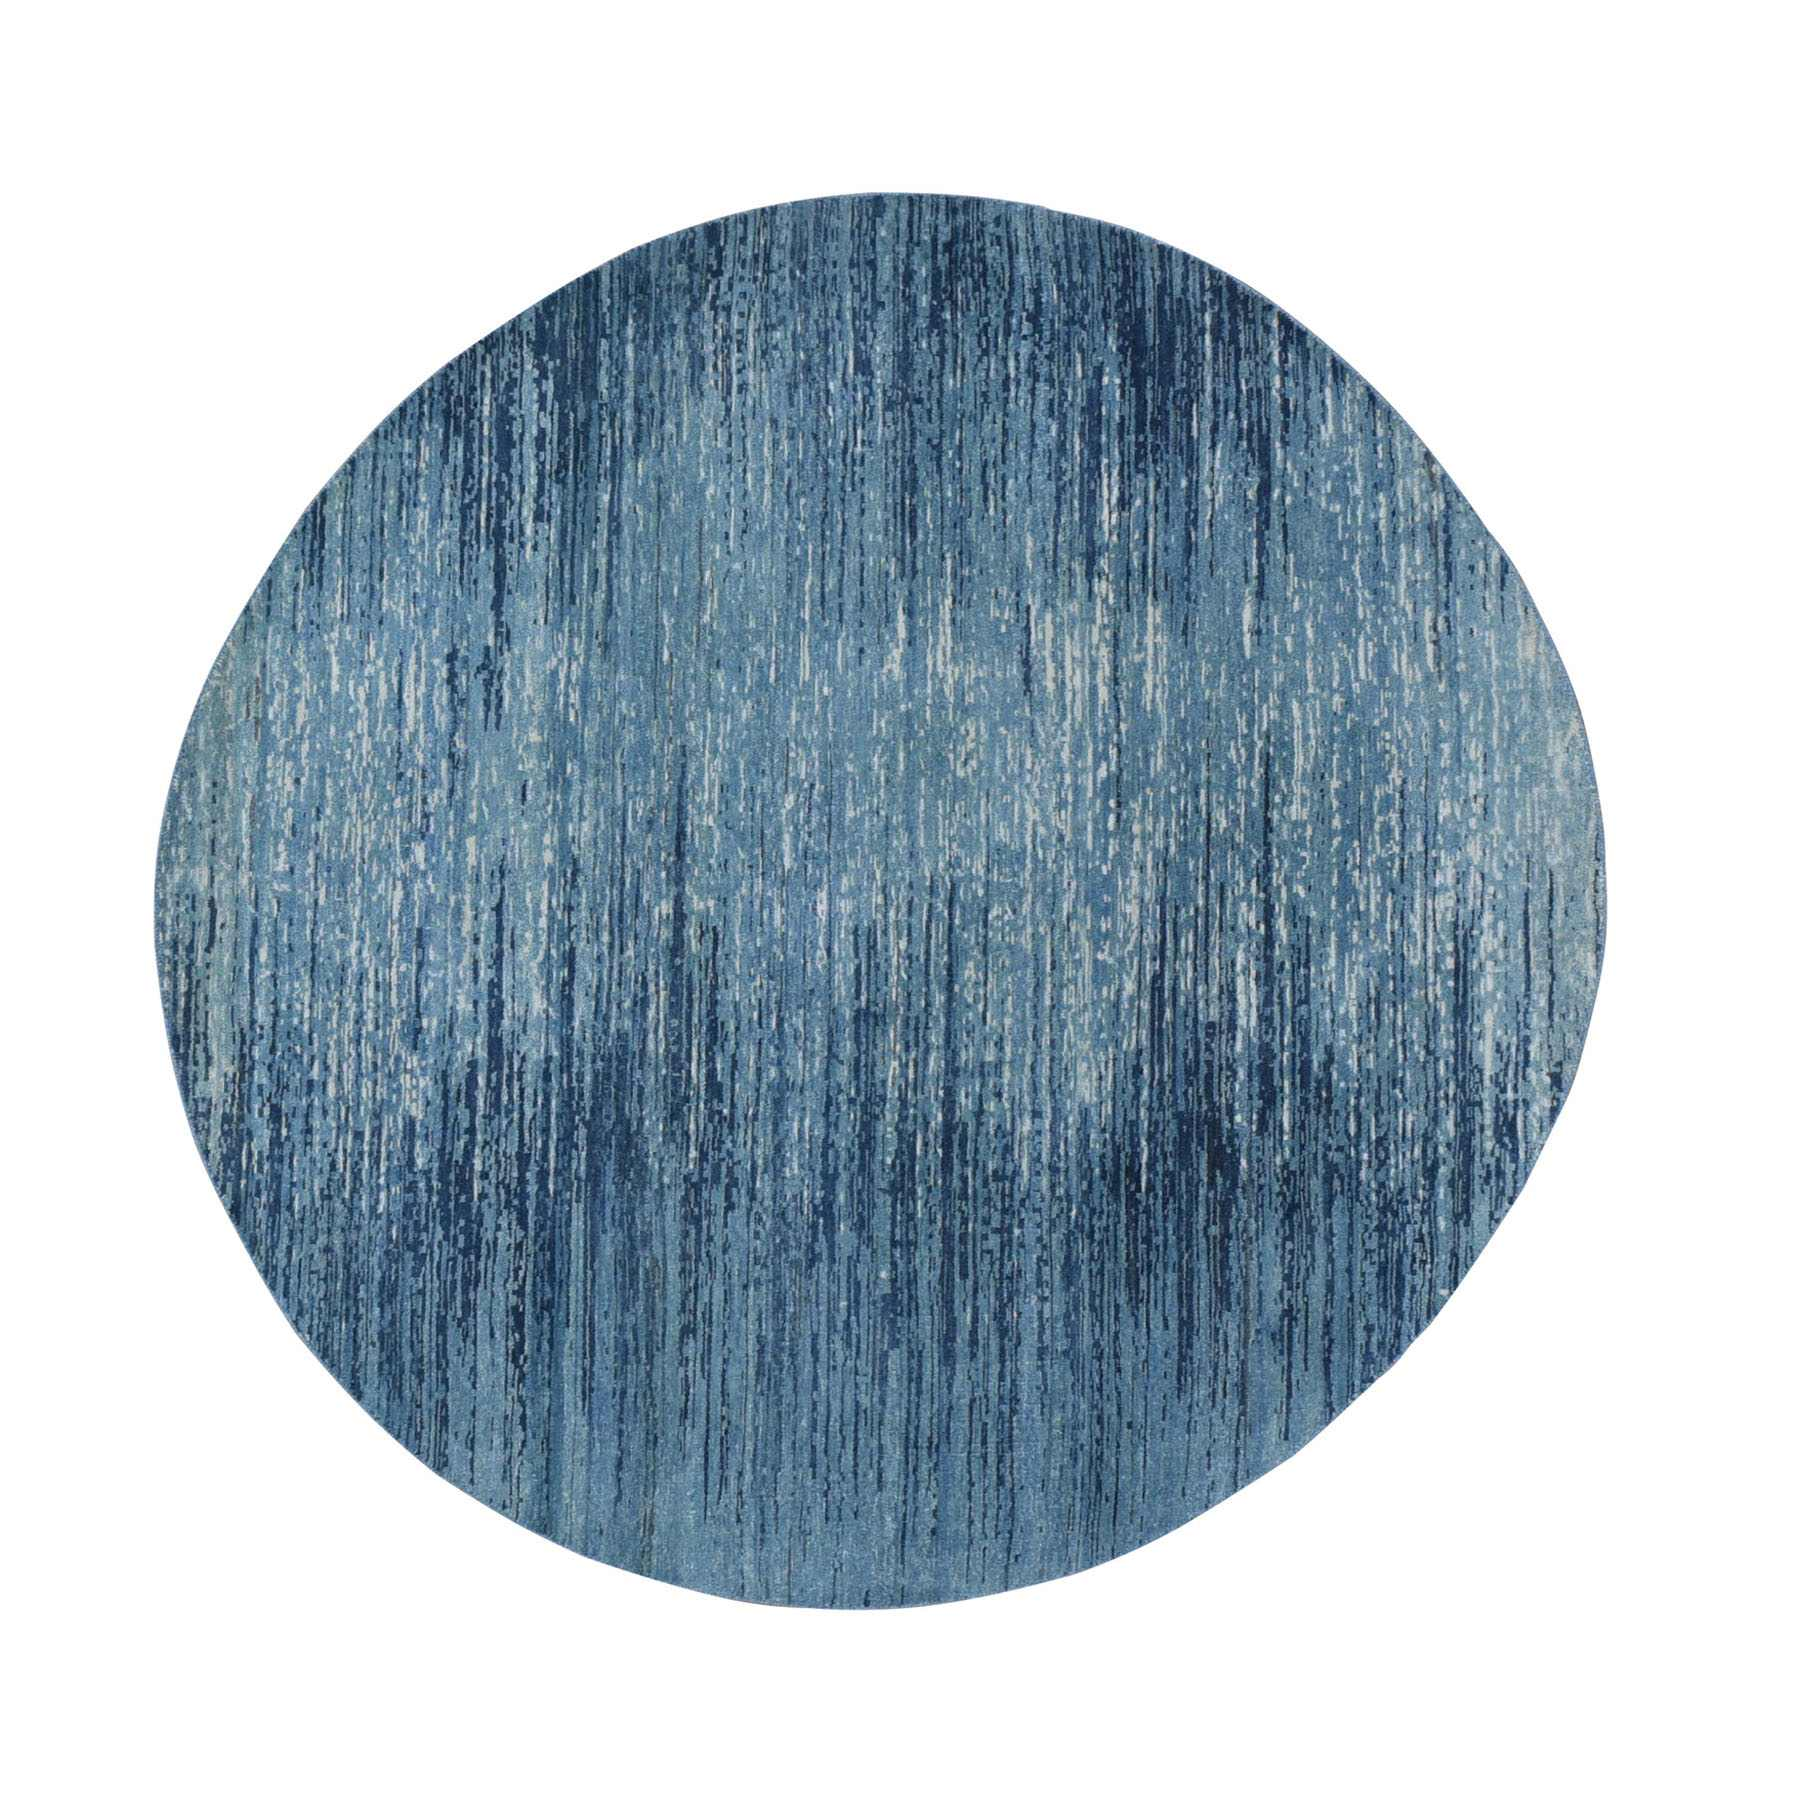 6'X6' Zero Pile Pure Wool Blue Oceanic Ombre Design Round Hand Knotted Oriental Rug moad9ded